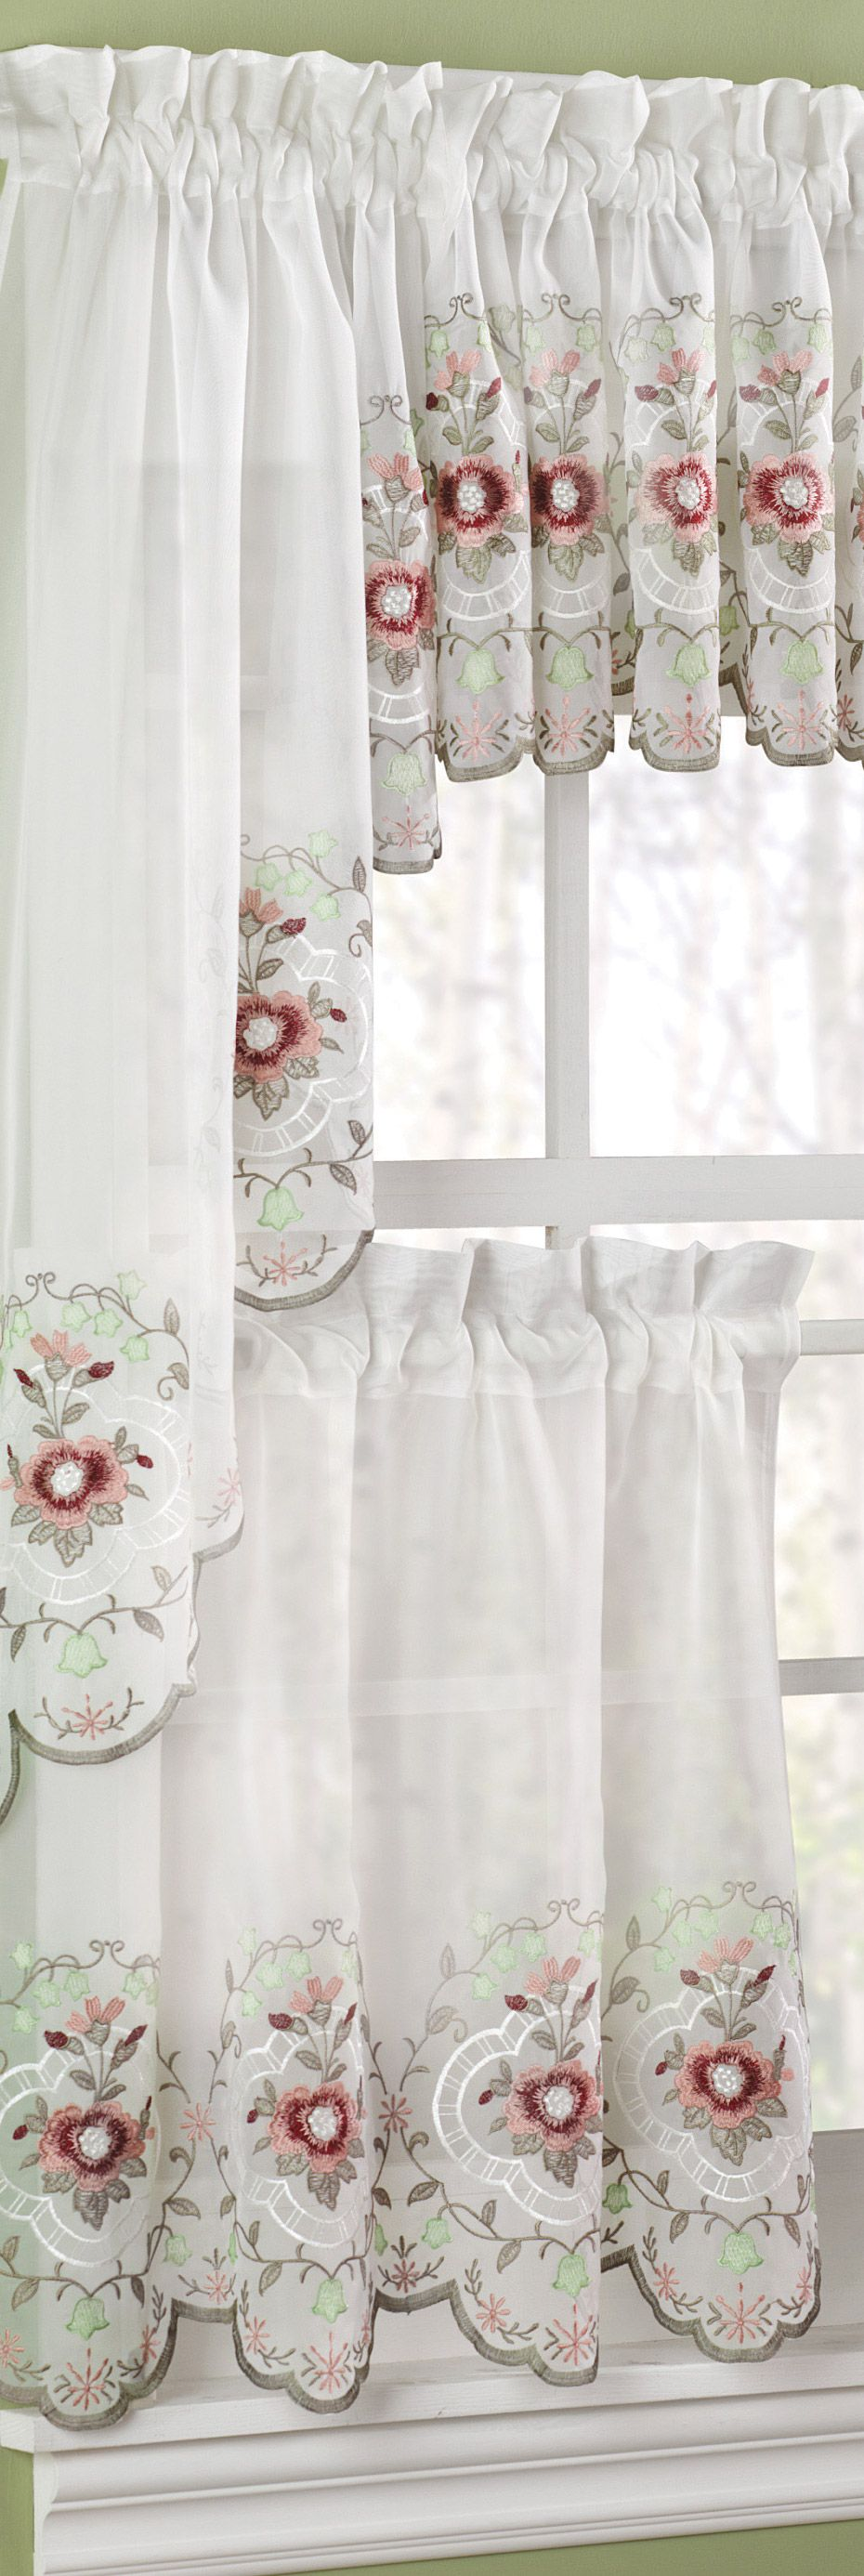 Embellish Your Kitchen Window With The Gisela Rose Tier Curtain Annaslinens Curtains Kitchen